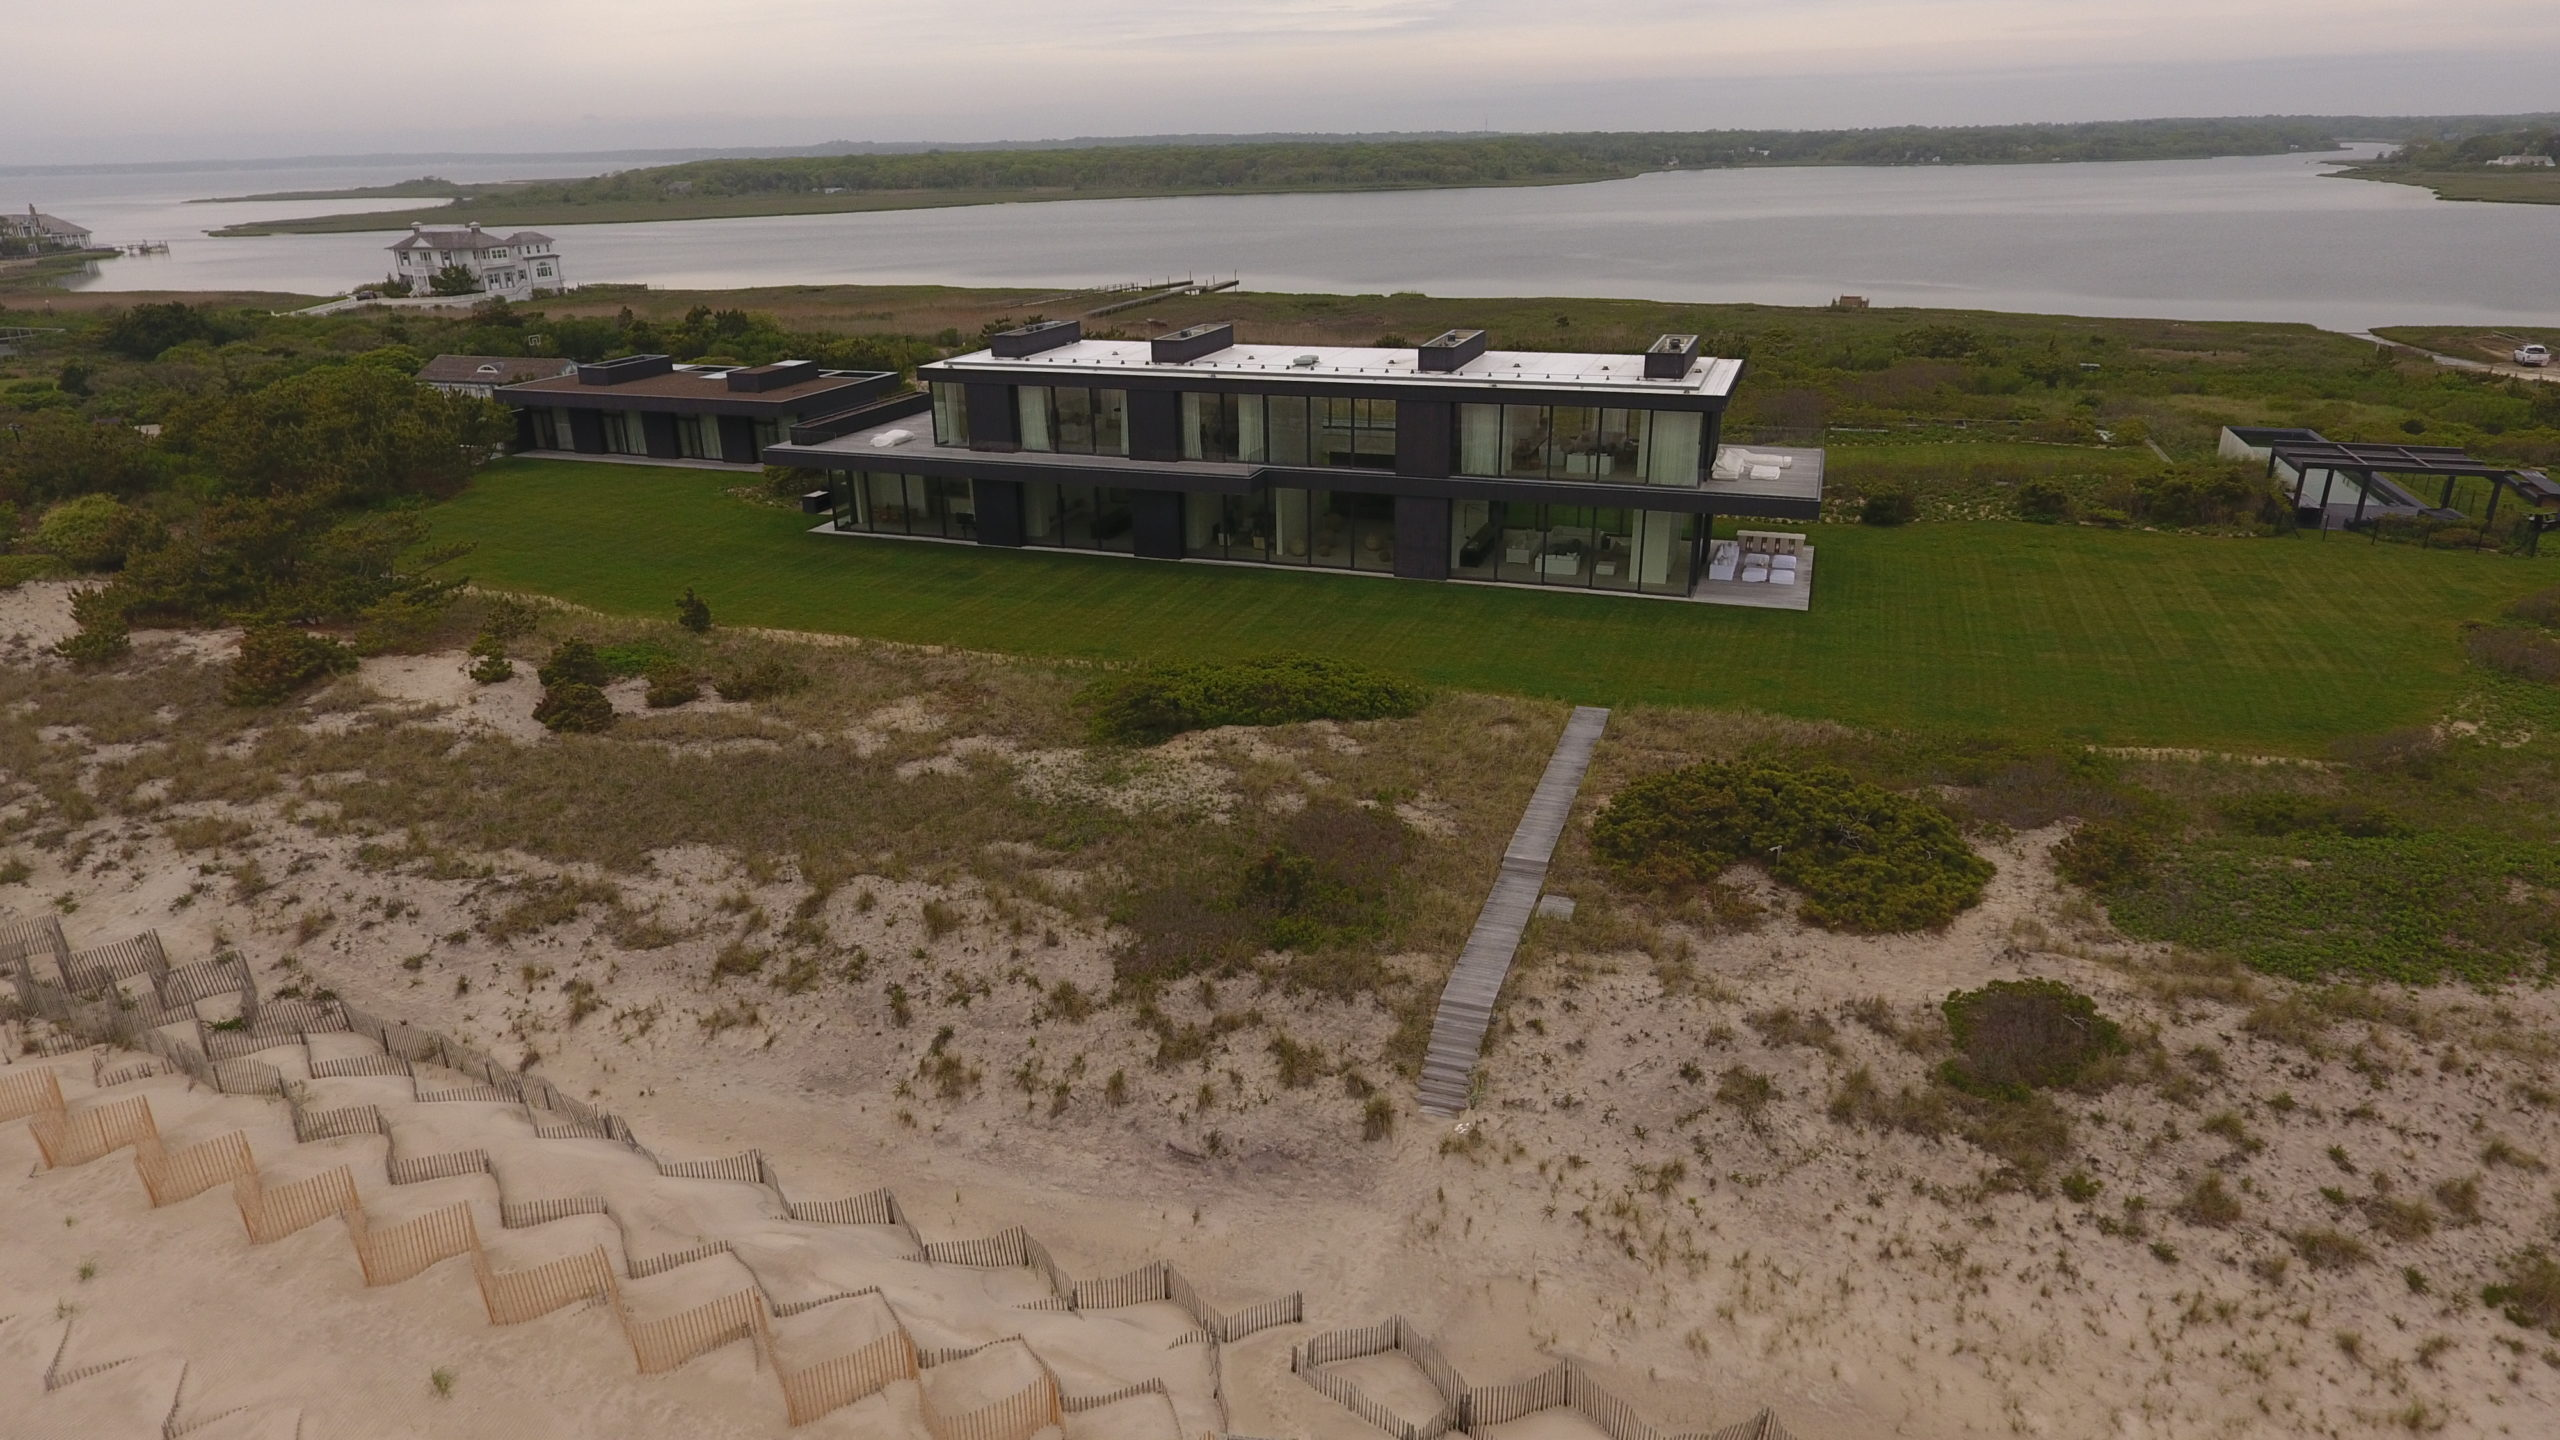 Calvin Klein sold his Southampton Village oceanfront estate in March for $84 million.